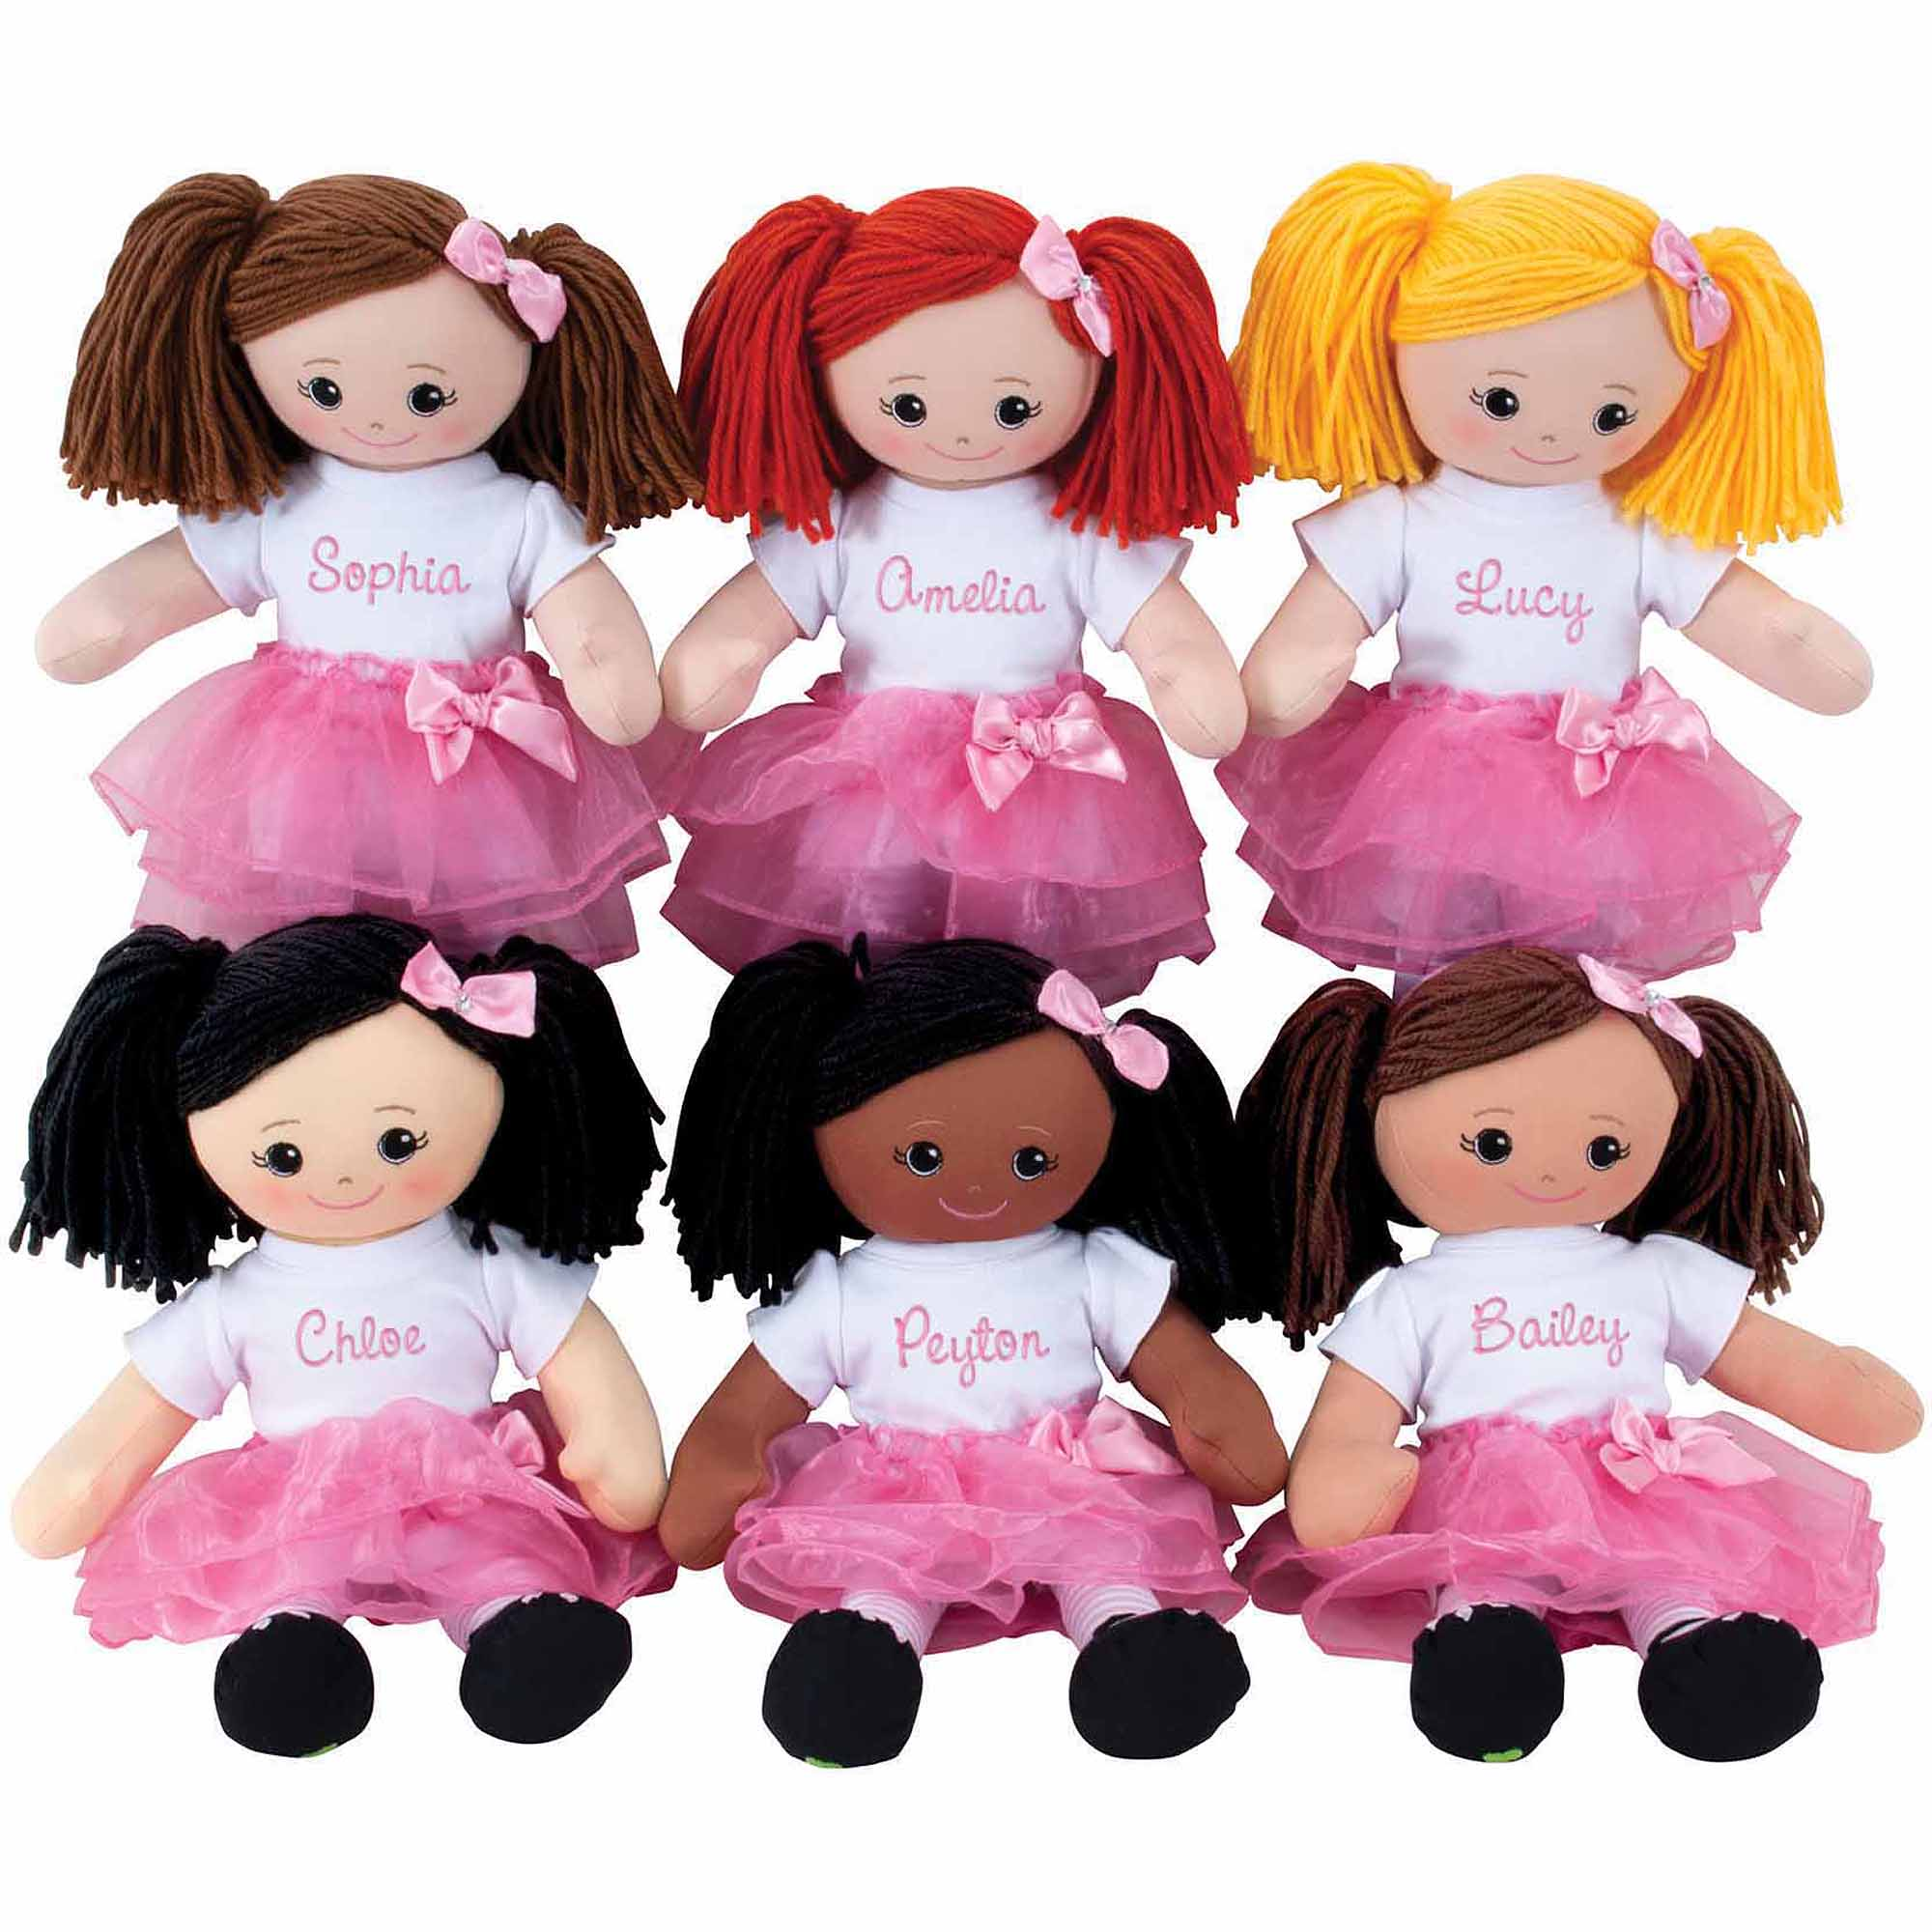 Personalized African American Doll With Tutu and Hair Clip